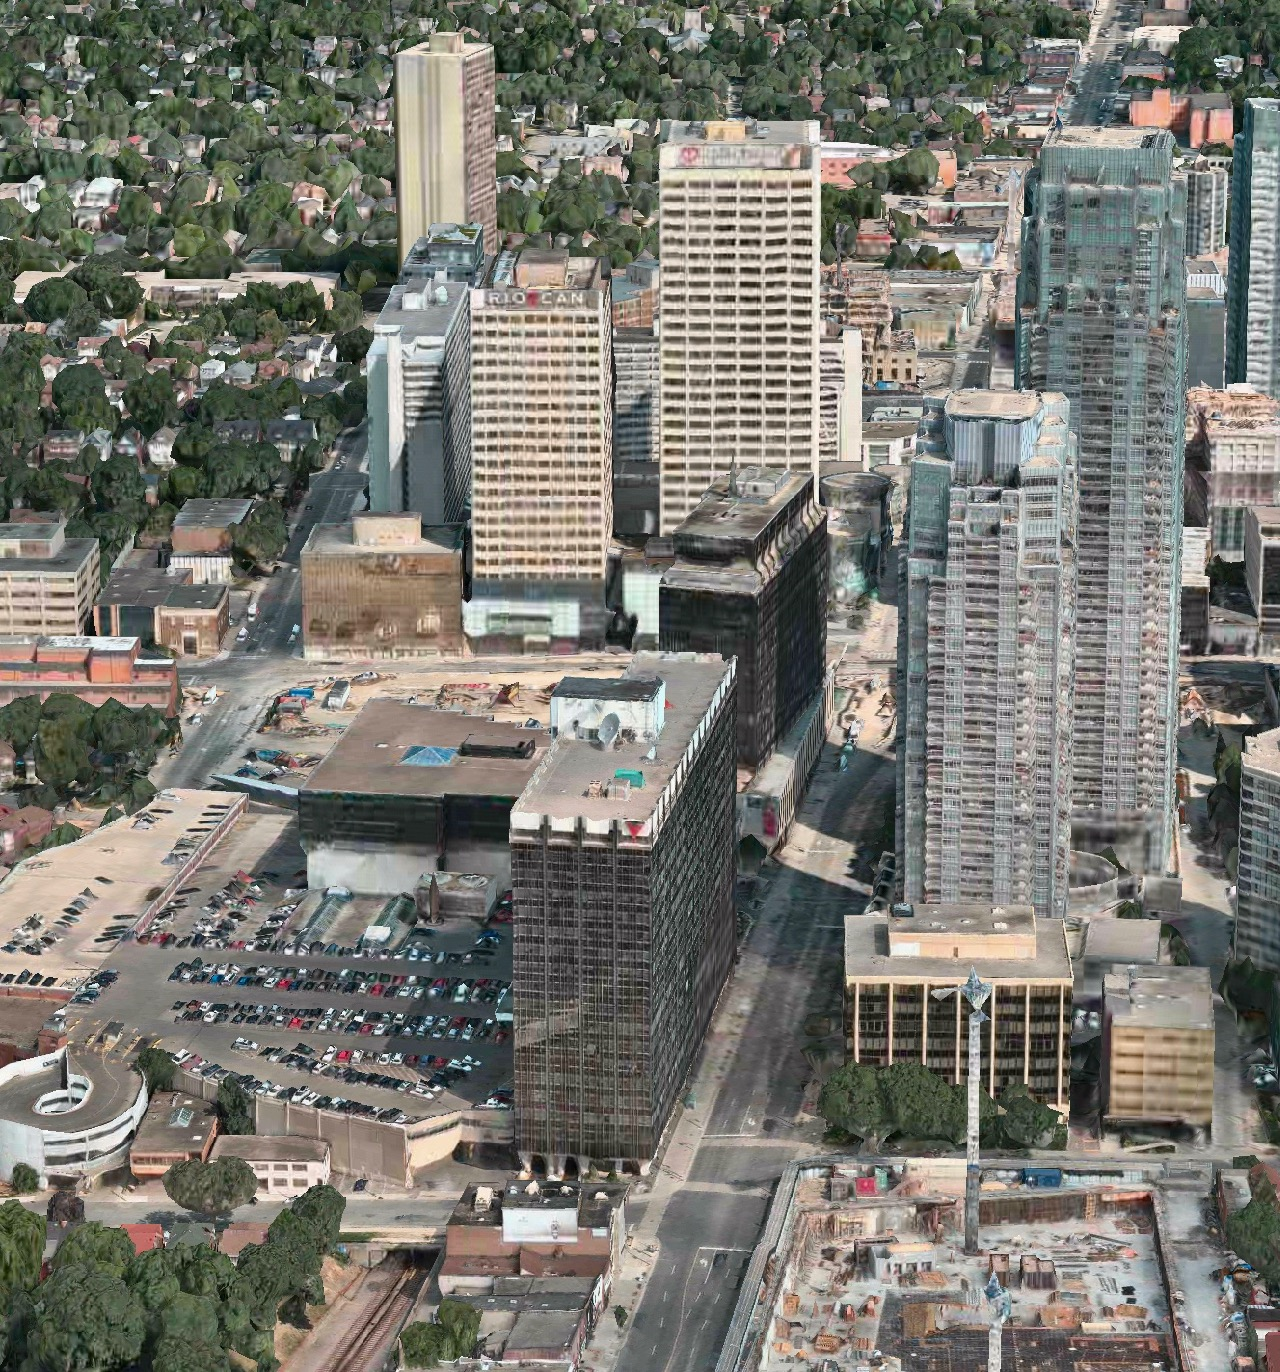 Looking north toward the existing Canada Square buildings along Yonge, image via Apple Maps